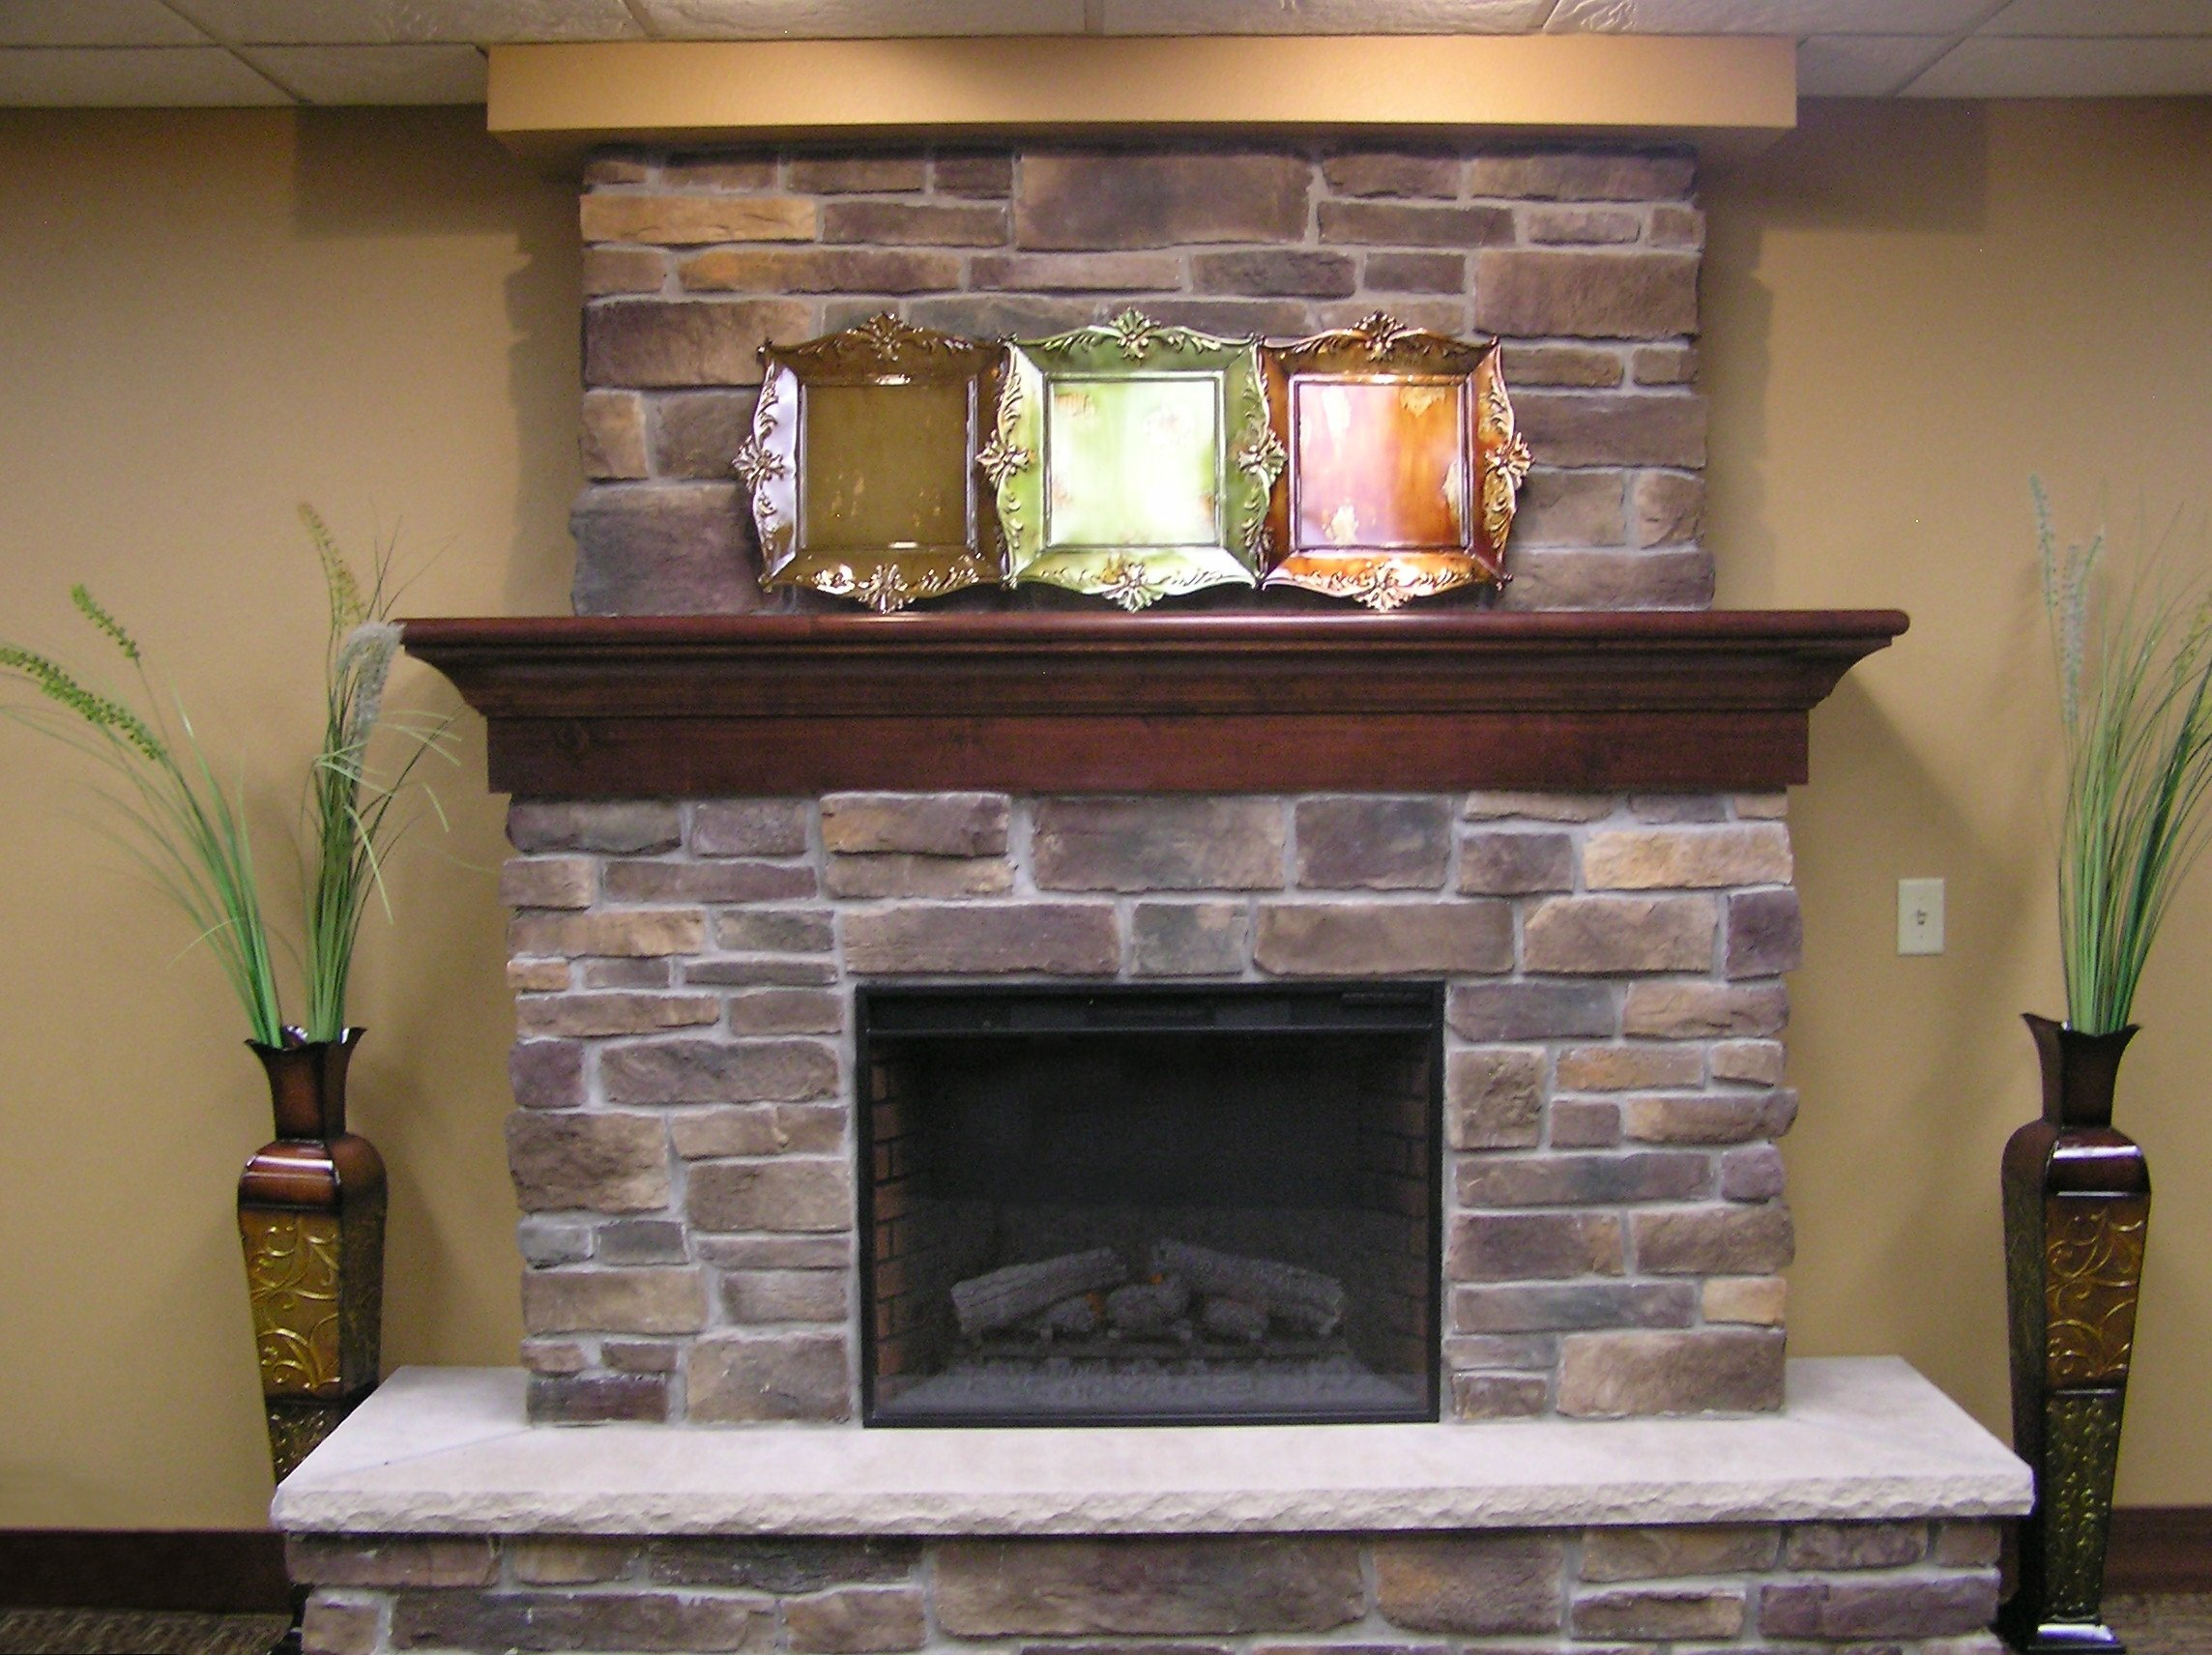 10 Spectacular Decorating Ideas For Fireplace Mantel fireplace mantel decor home decorating ideas 004 loversiq 2020